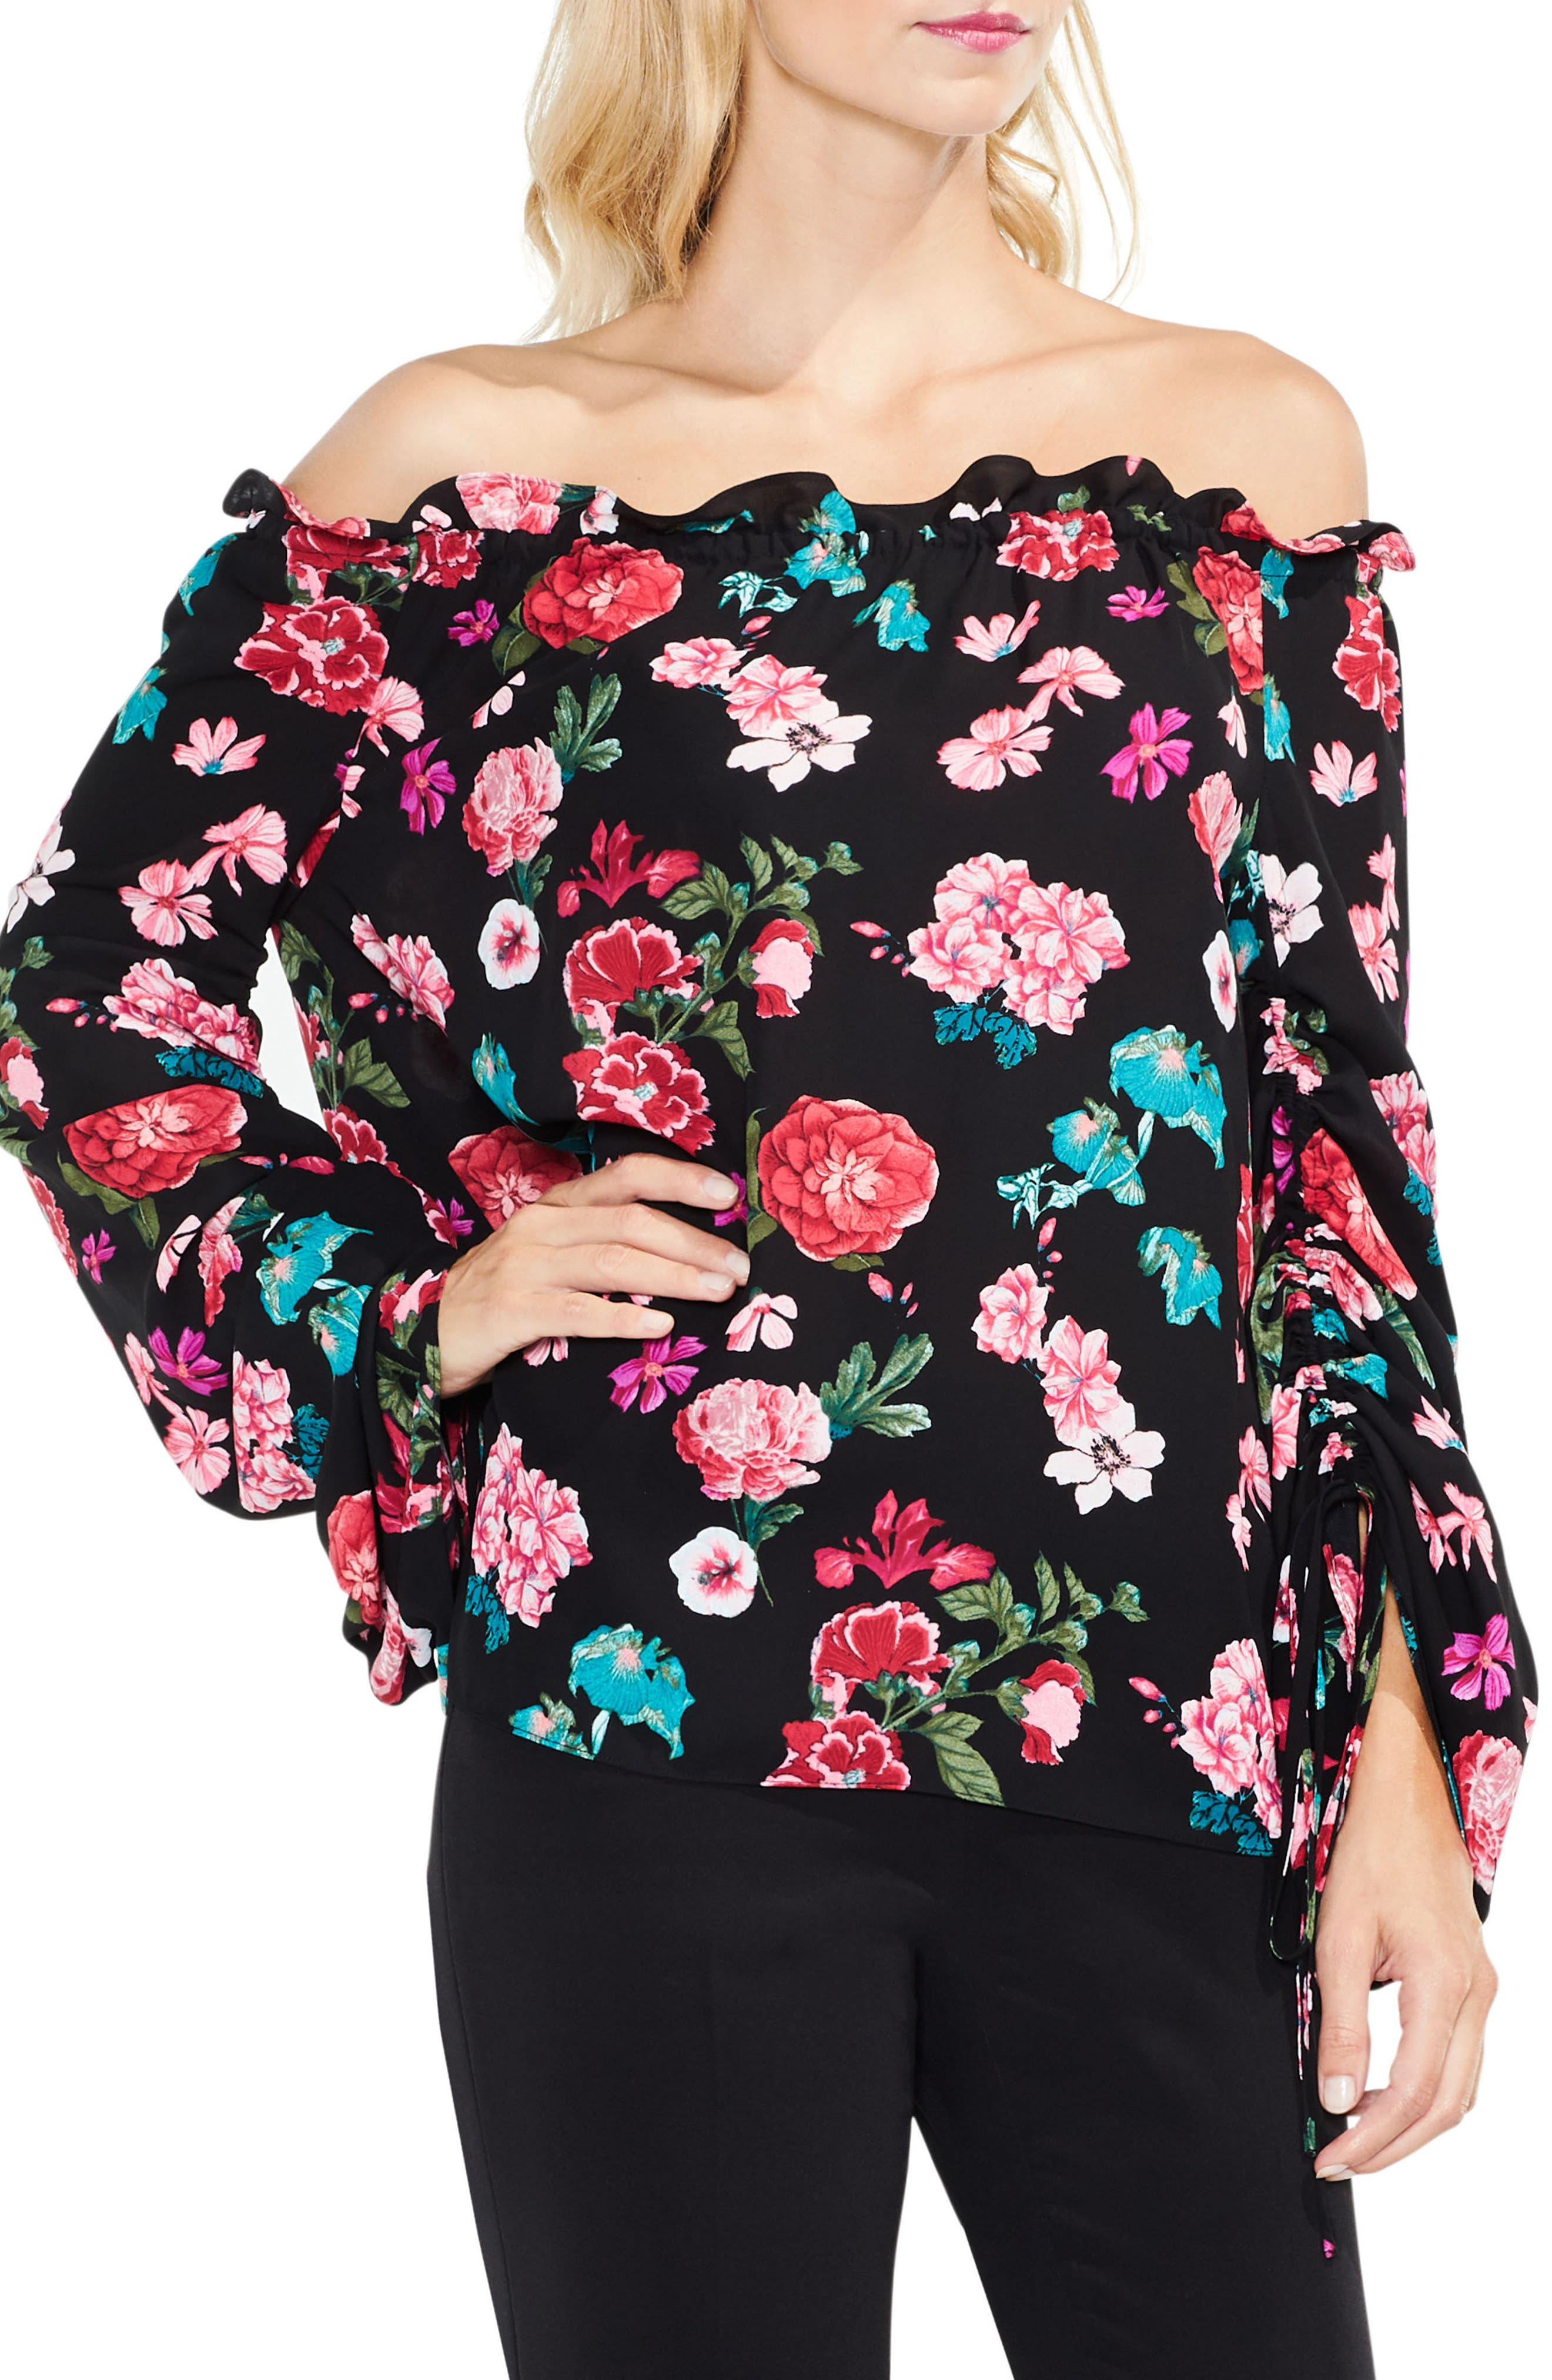 Off the Shoulder Floral Heirloom Top,                             Main thumbnail 1, color,                             006